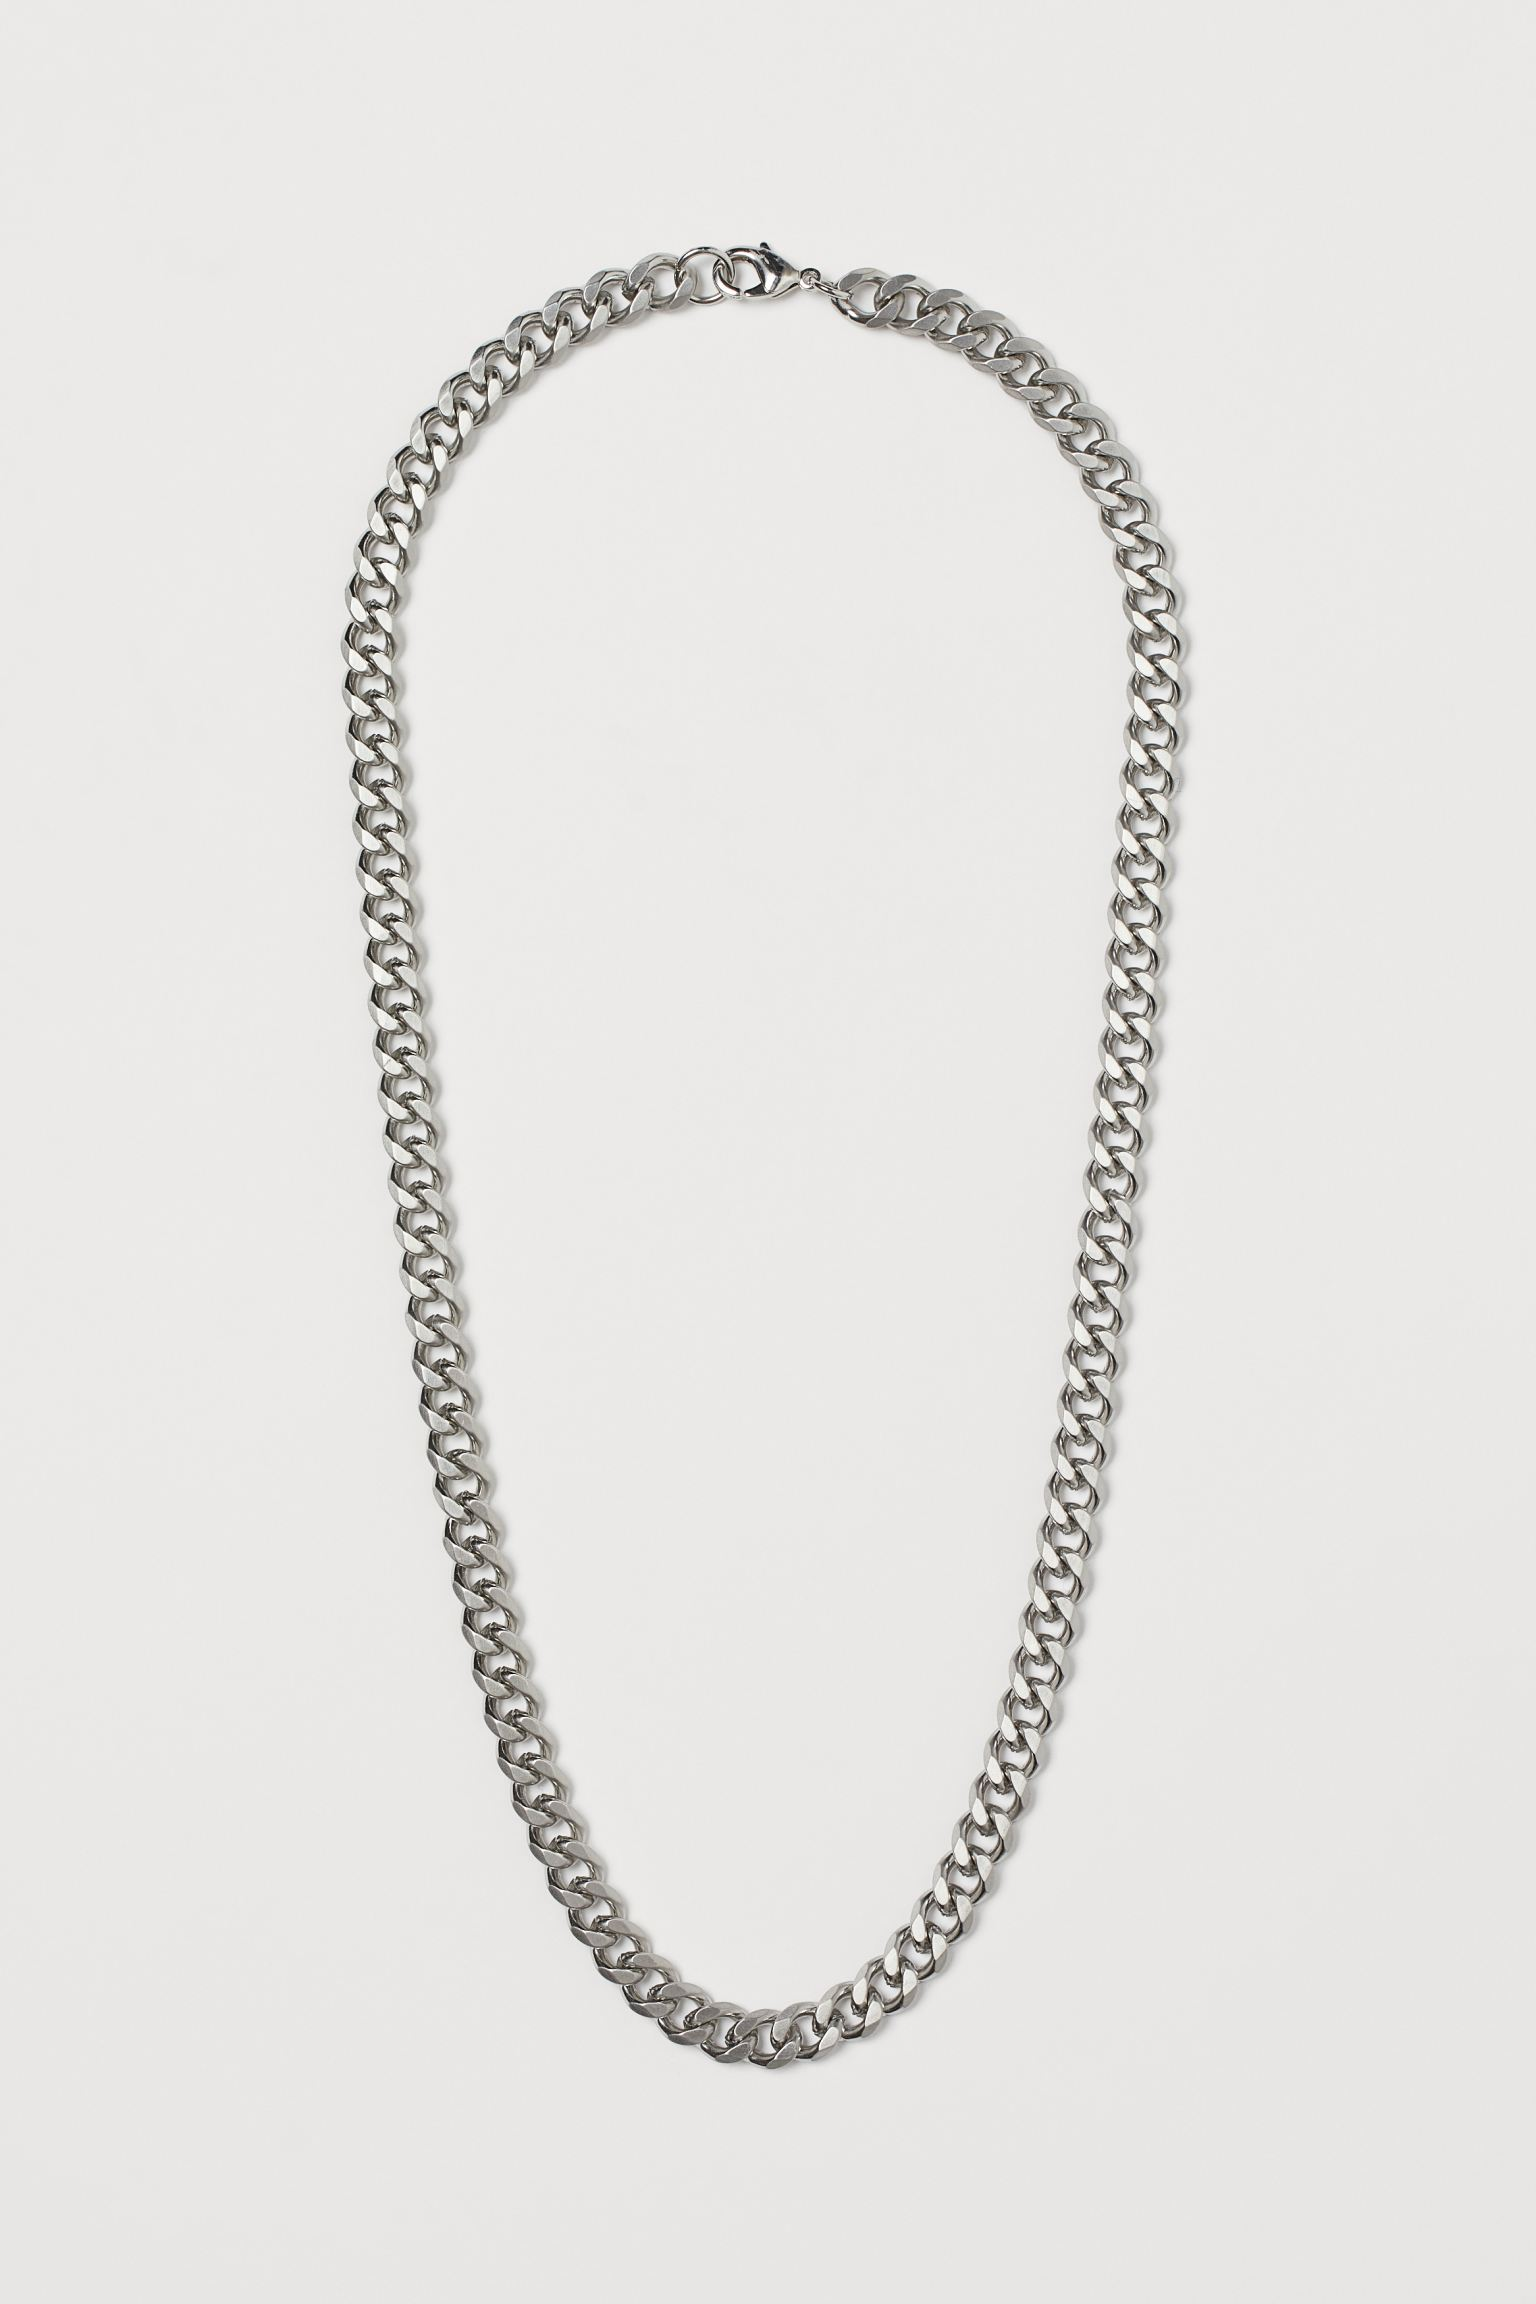 H&M Chain Necklace Image